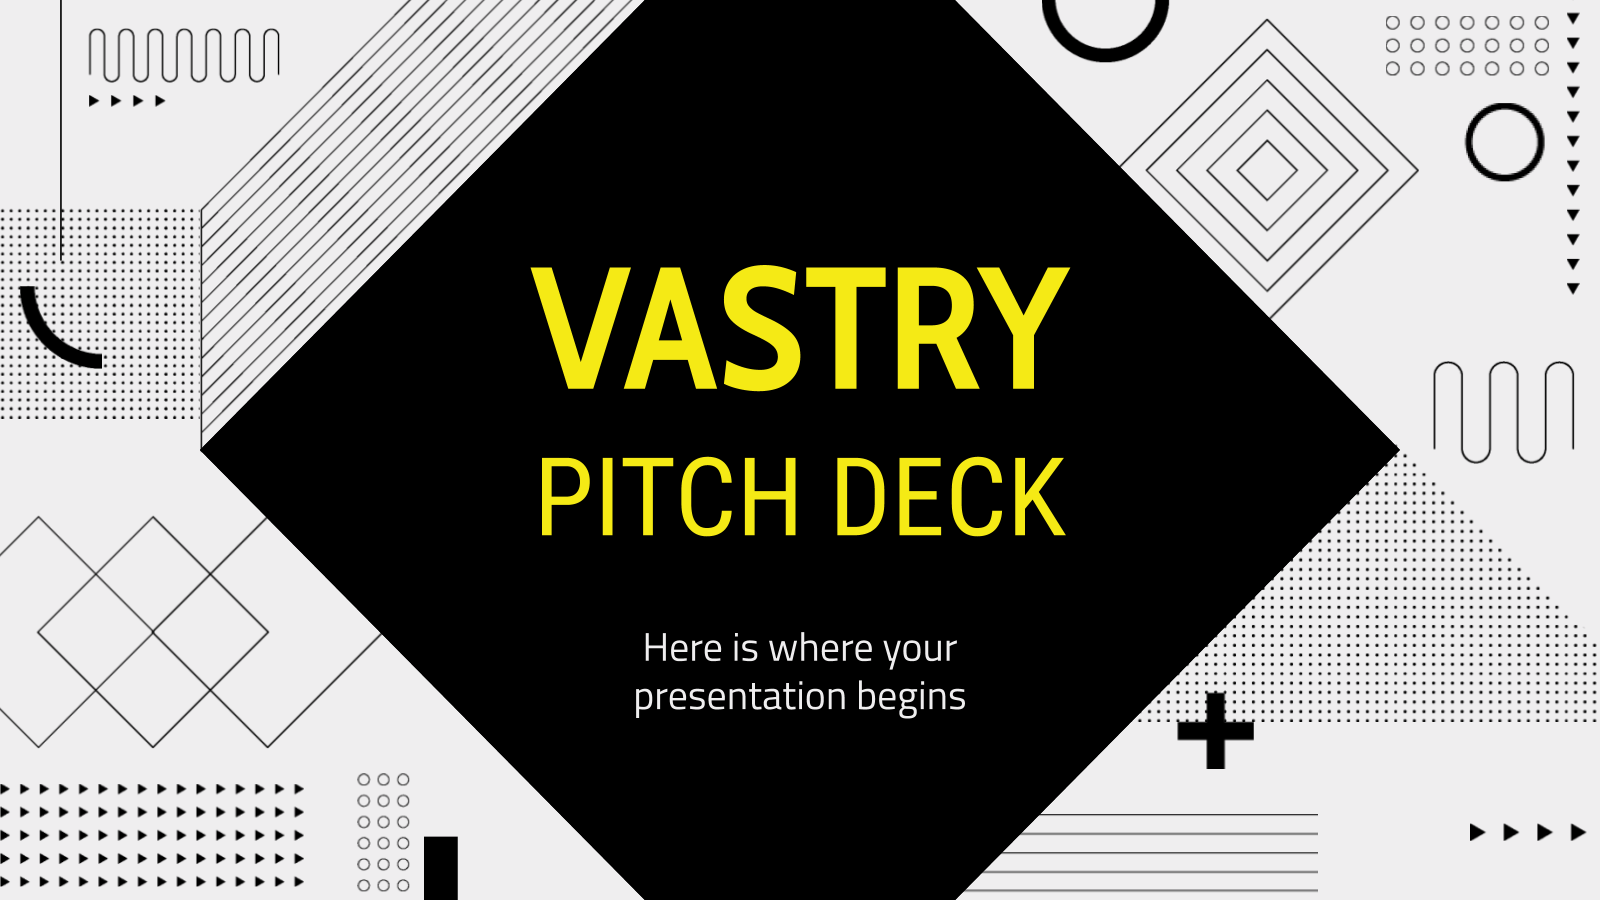 Vastry Pitch Deck presentation template